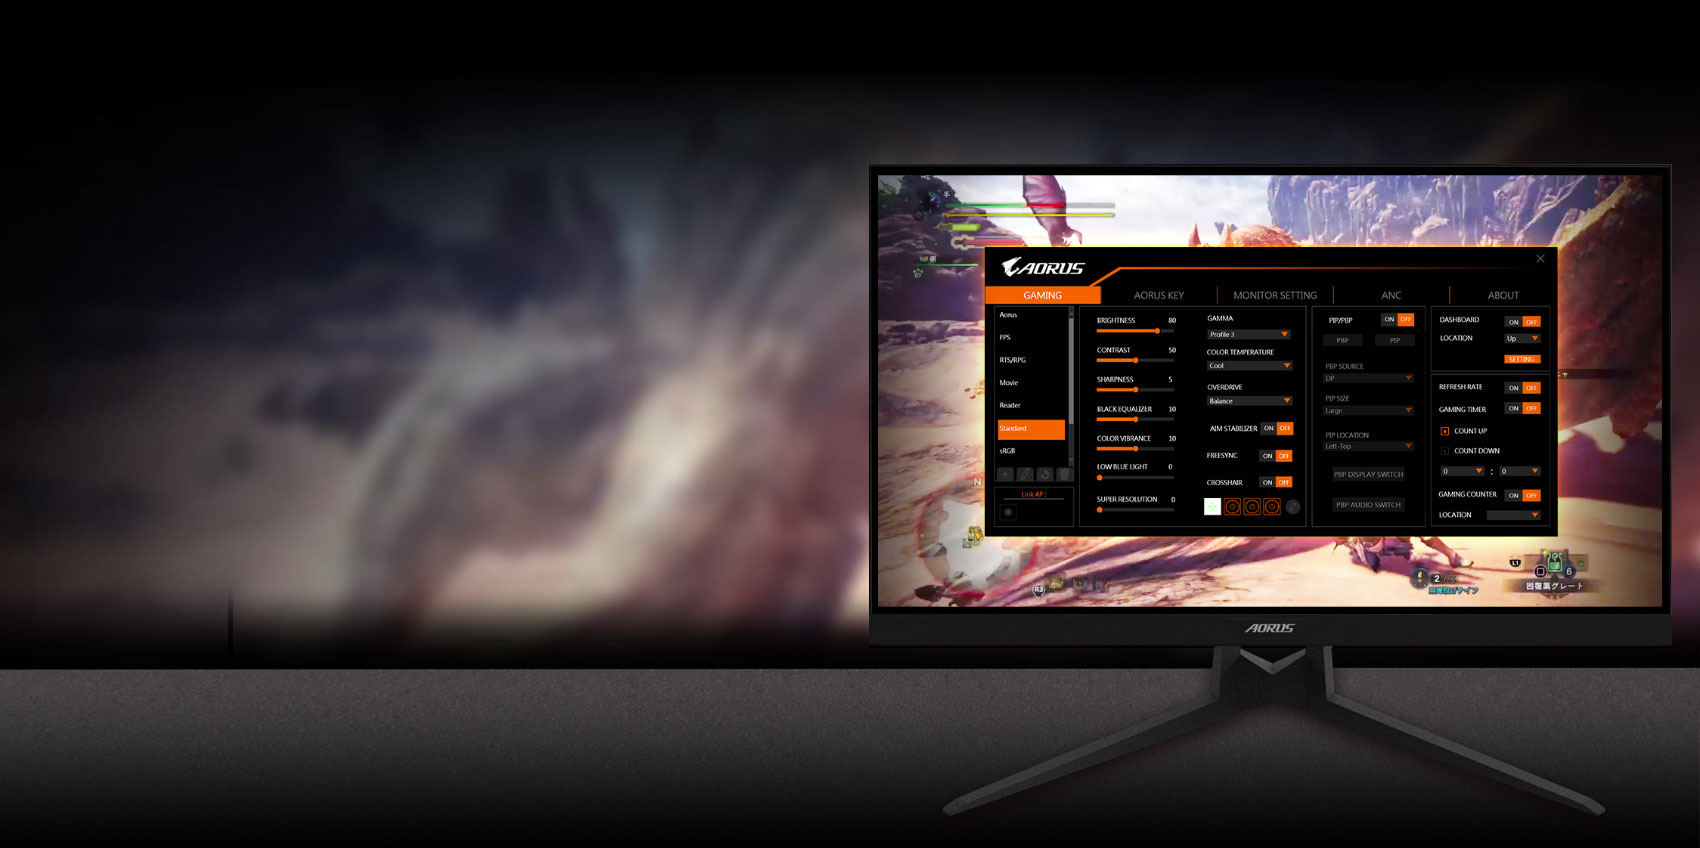 GIGABYTE AORUS FI27Q 27 Monitor Angled to the left, showing the screenshot of osd sidekick